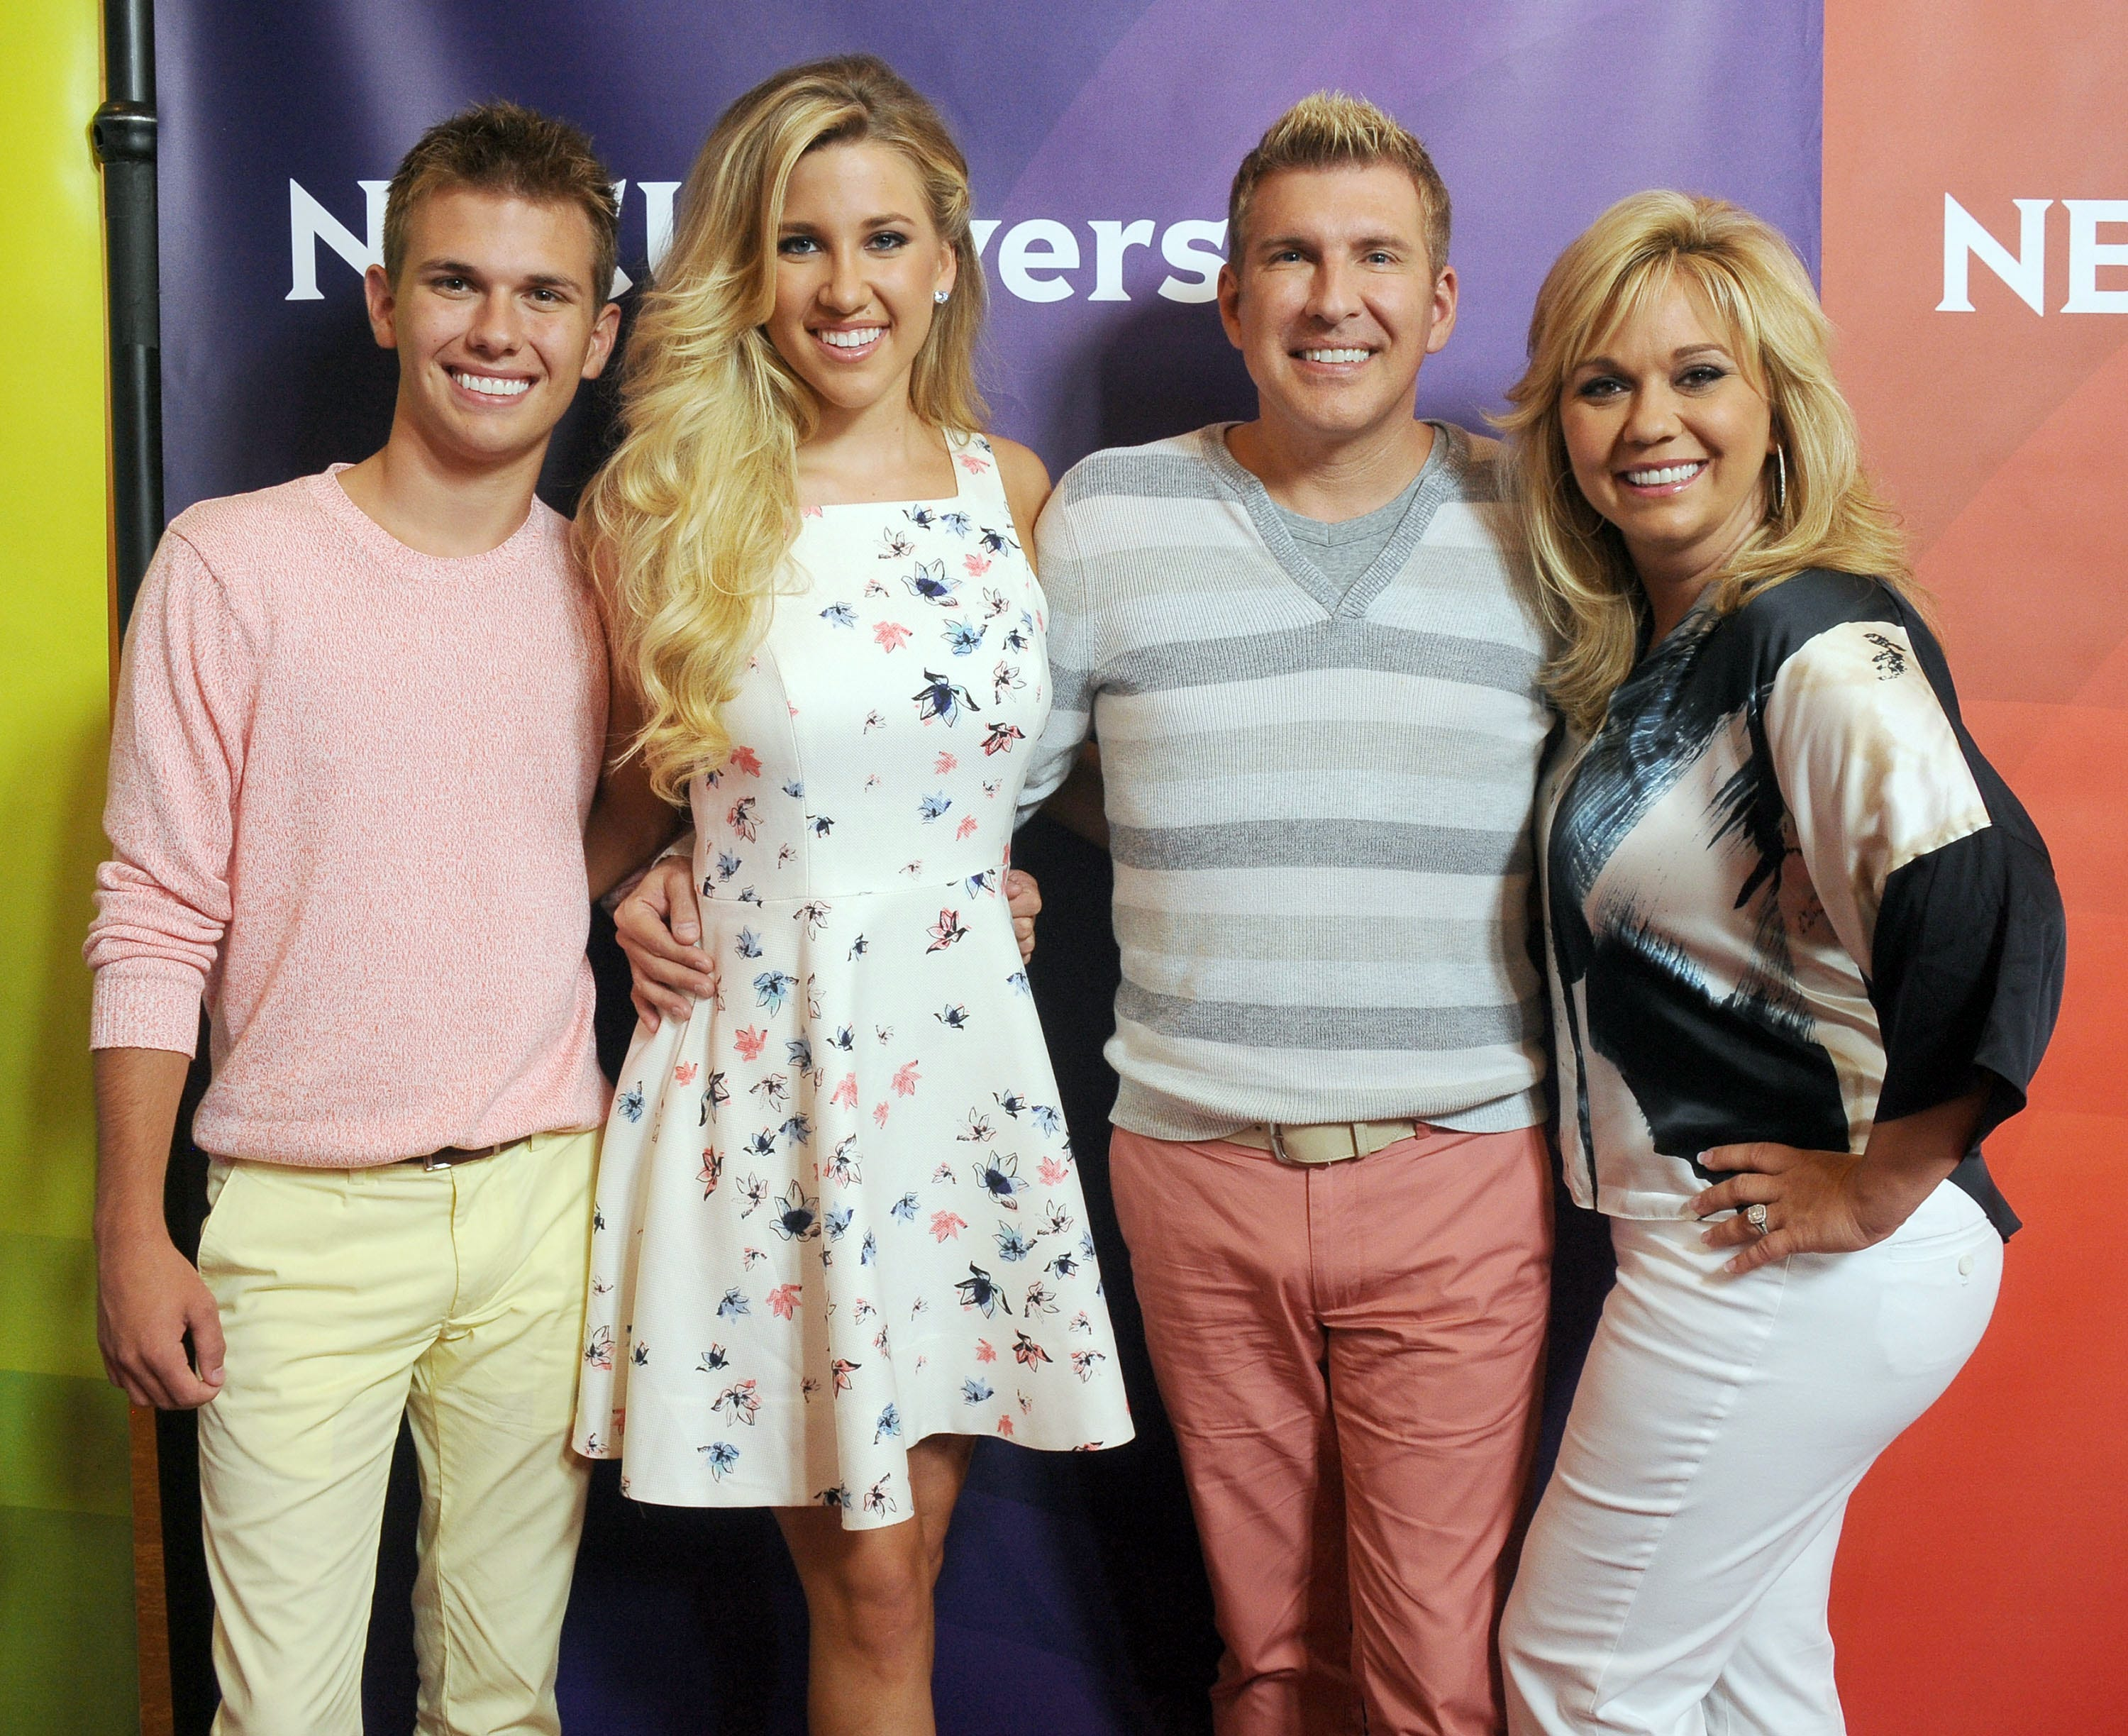 julie chrisley youngjulie chrisley net worth, julie chrisley age, julie chrisley recipes, julie chrisley instagram, julie chrisley wiki, julie chrisley kids, julie chrisley young, julie chrisley parents, julie chrisley children, julie chrisley birthday, julie chrisley first husband, julie chrisley restaurant name, julie chrisley food blog, julie chrisley miss universe, julie chrisley younger, julie chrisley hairstyles, julie chrisley cooking show, julie chrisley haircut, julie chrisley wedding ring, julie chrisley broccoli salad recipe